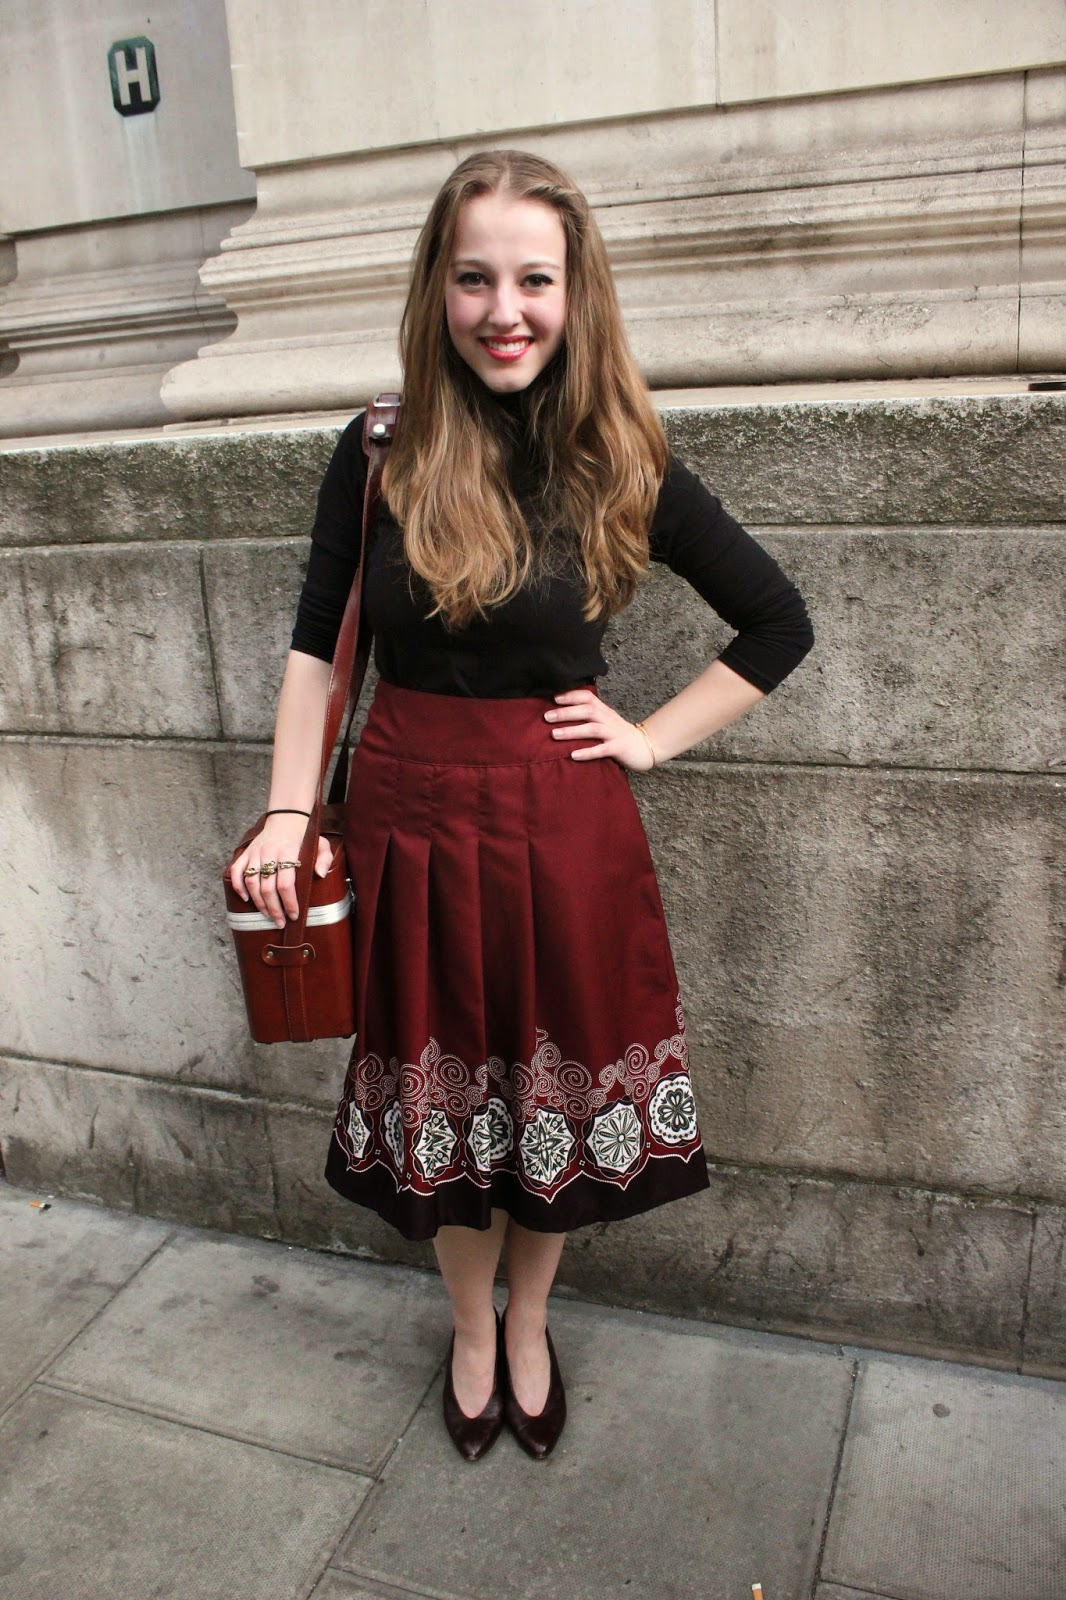 london-fashion-week-2014-lfw-spring-summer-2015-blogger-fashion-Dora-Abodi-catwalk-models-freemasons hall-fashion-scout-street-style-polo-neck-midi-skirt-heels-vintage-camera-case-OOTD-outfit-inspiration